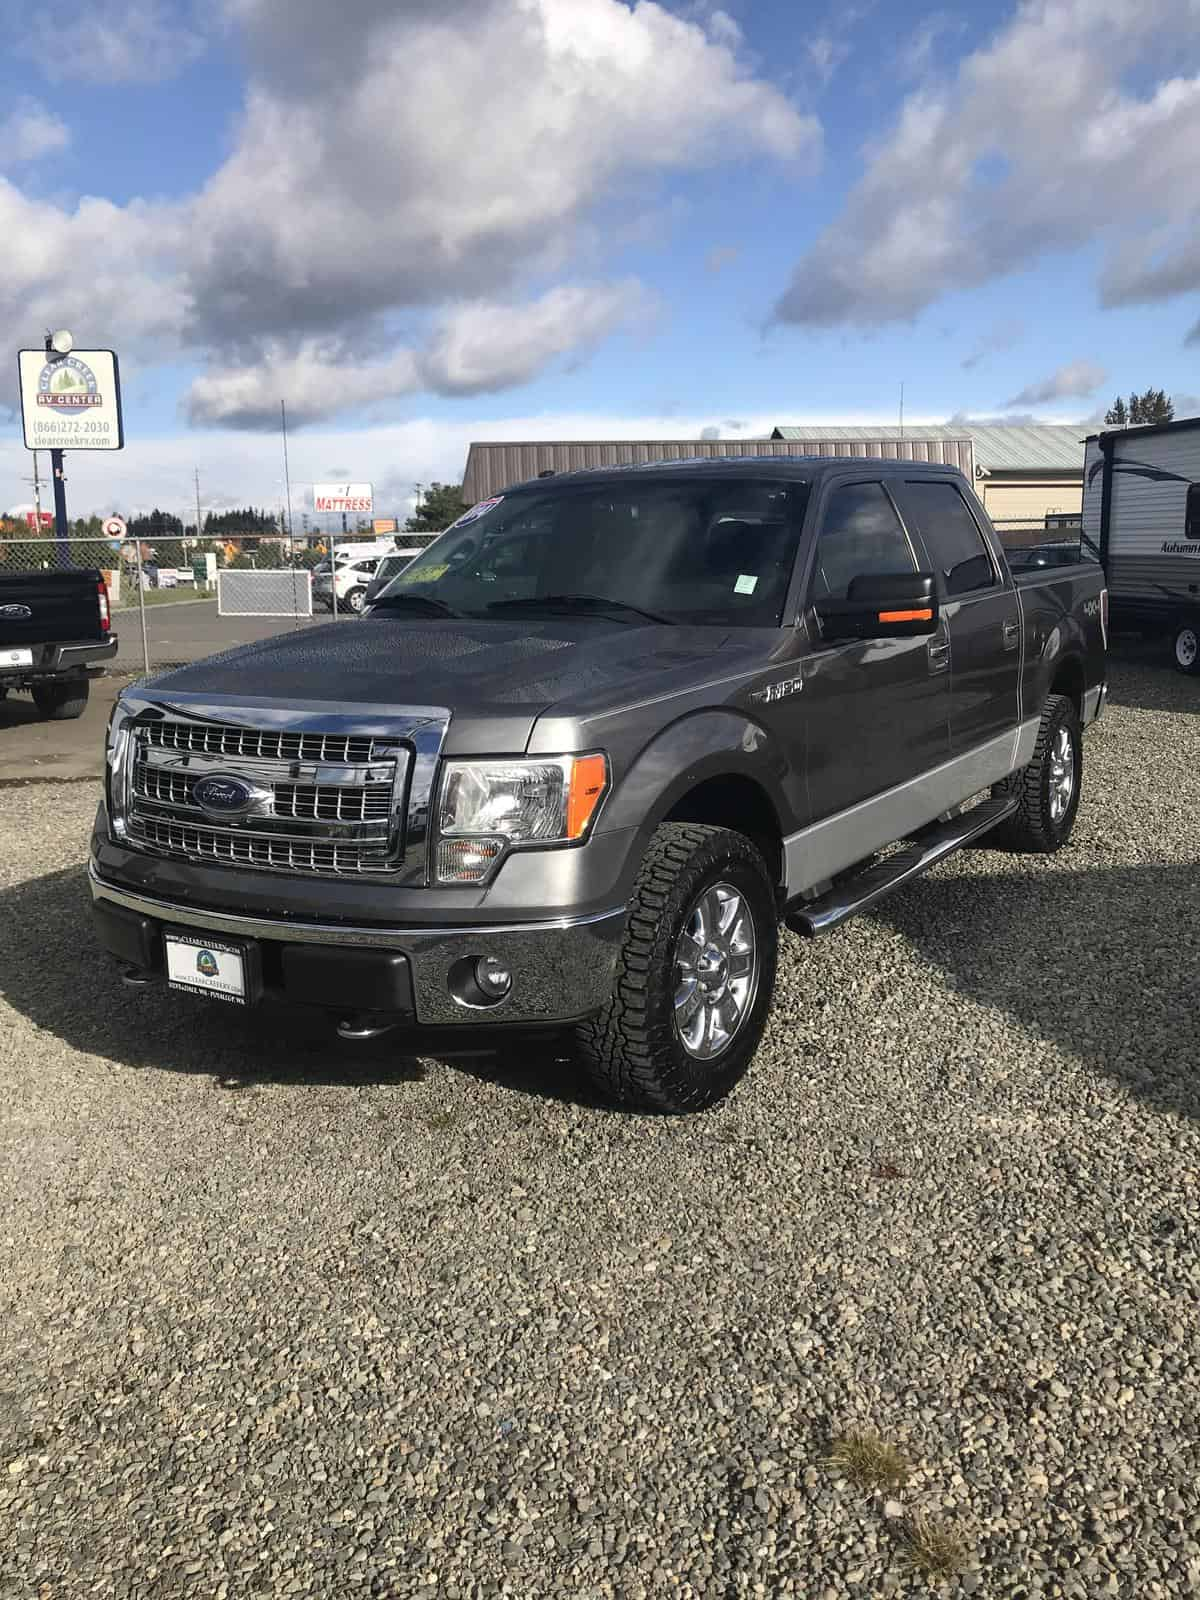 USED 2014 FORD F150 XLT 4X4